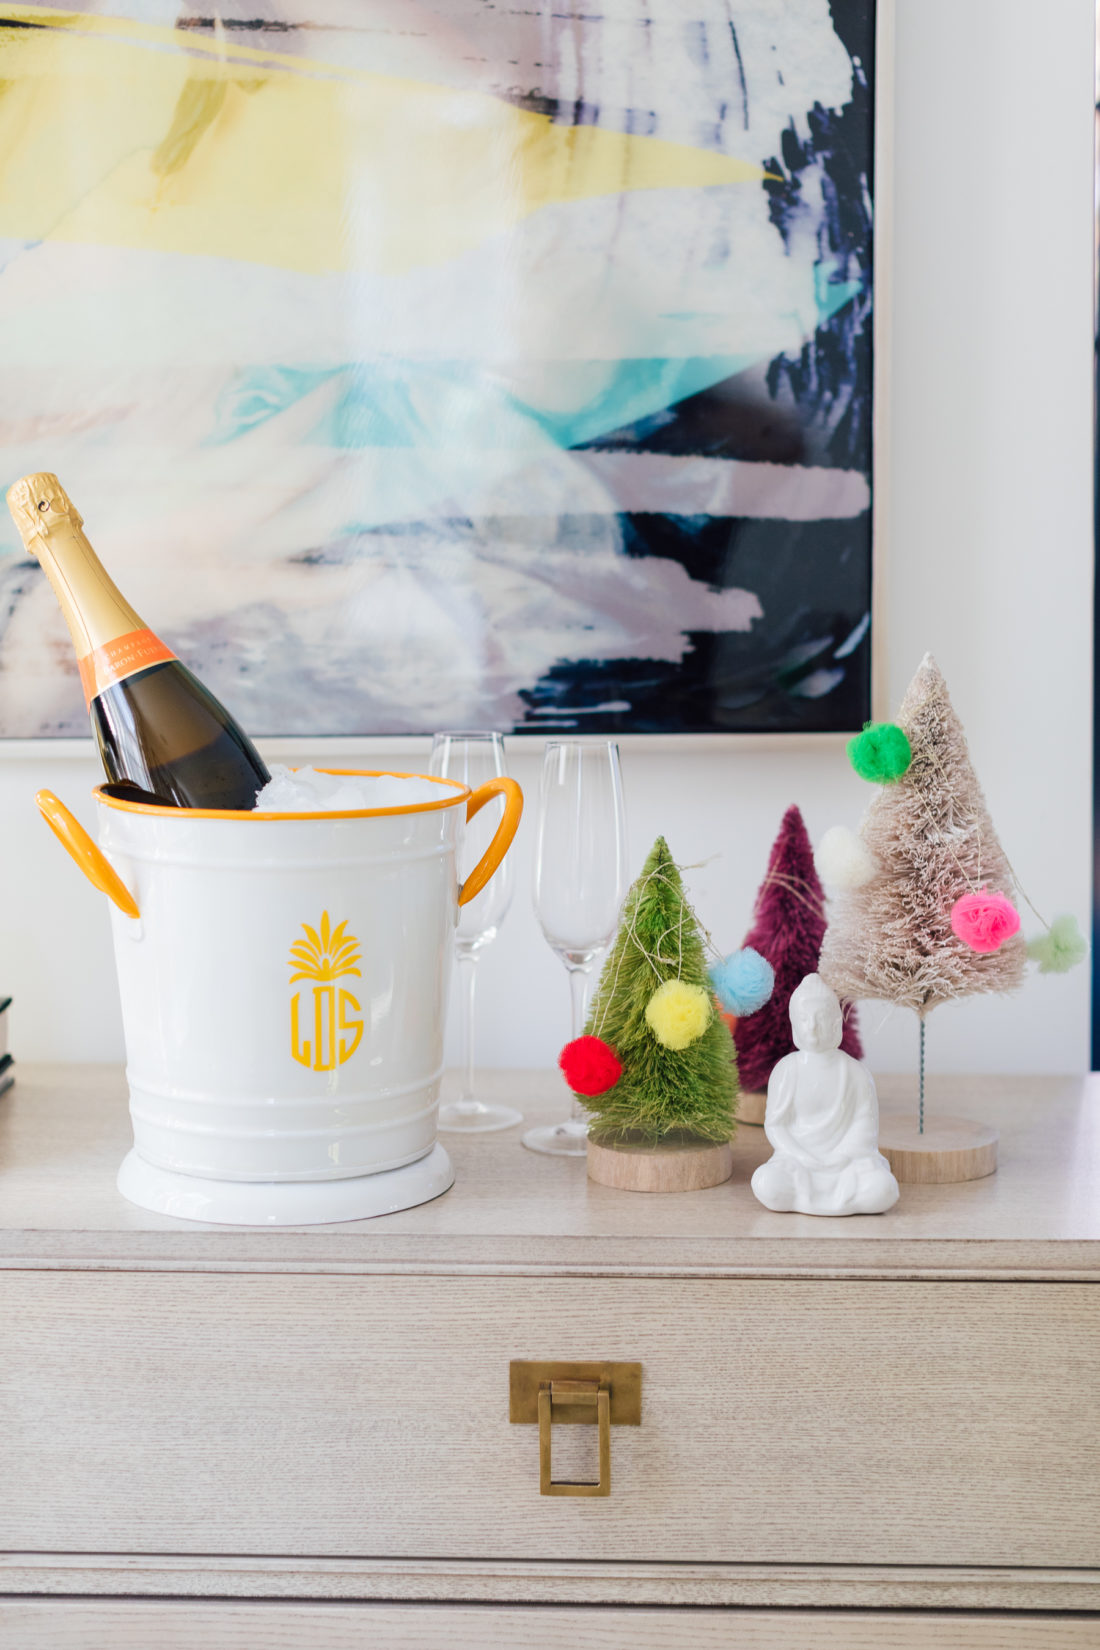 Eva Amurri Martino shares her favorite hostess gifts under $50, including a Monogrammed Mark & Graham Enamel Ice Bucket